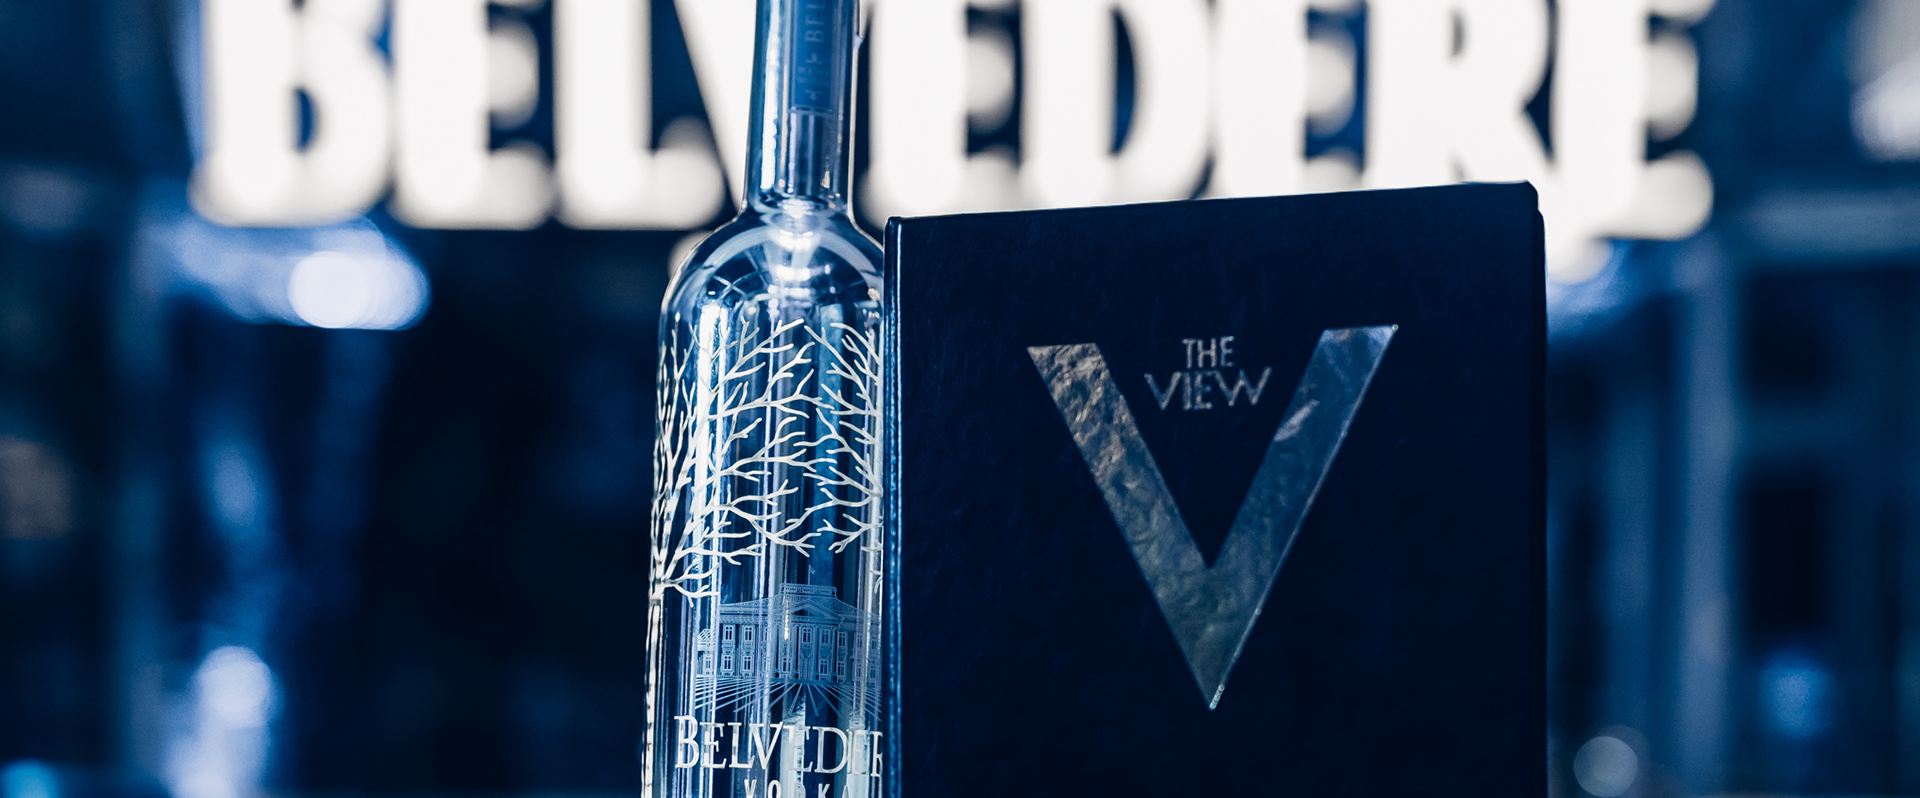 Belvedere x The View